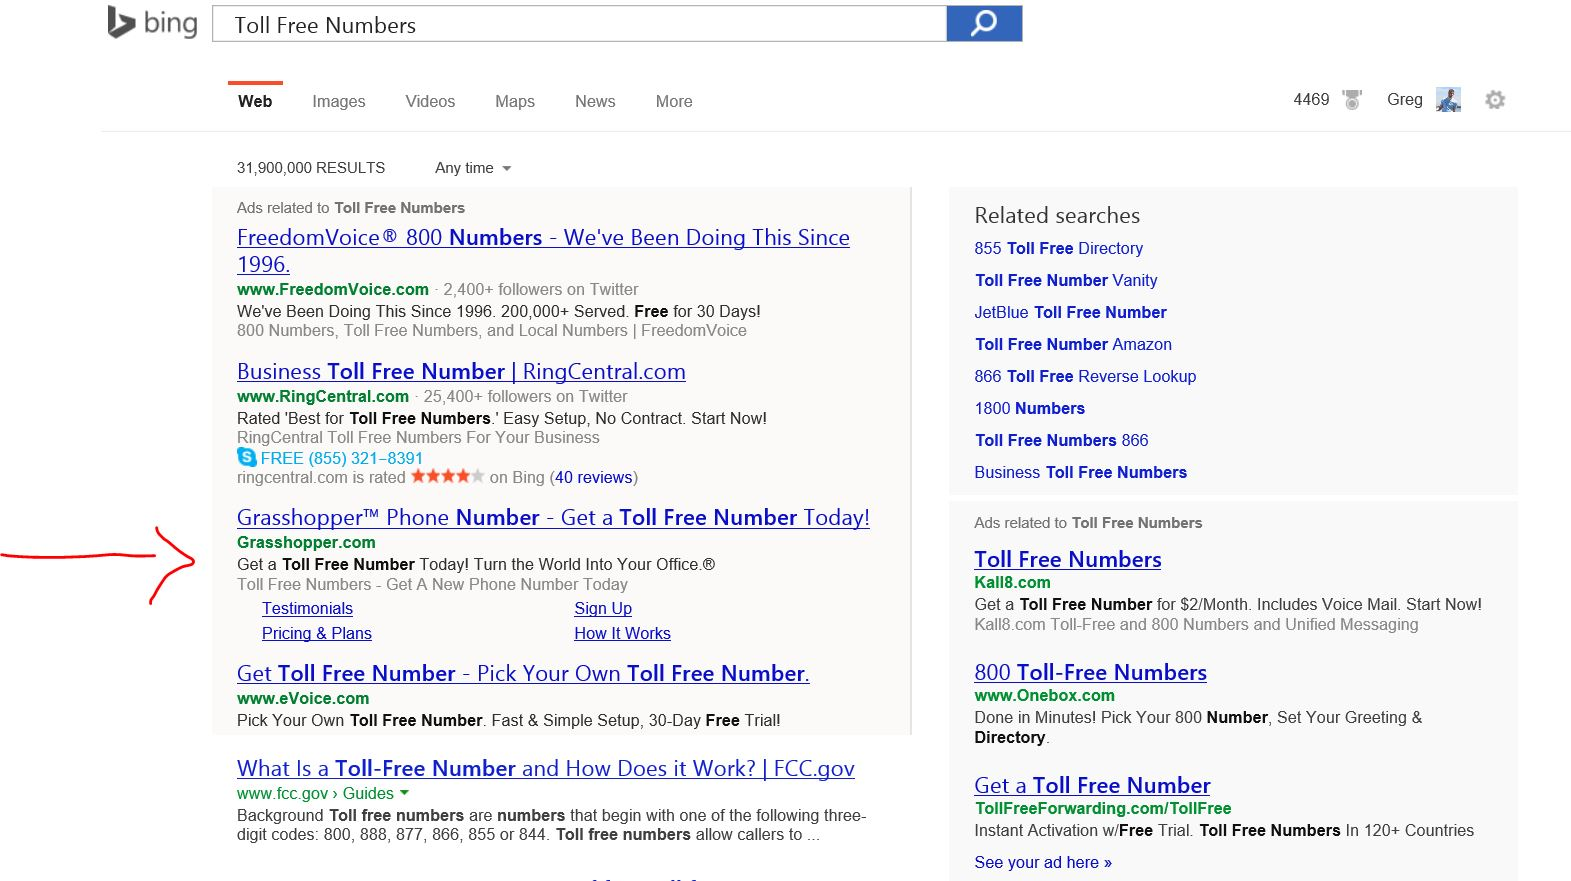 Example of sitelinks in Bing Ads